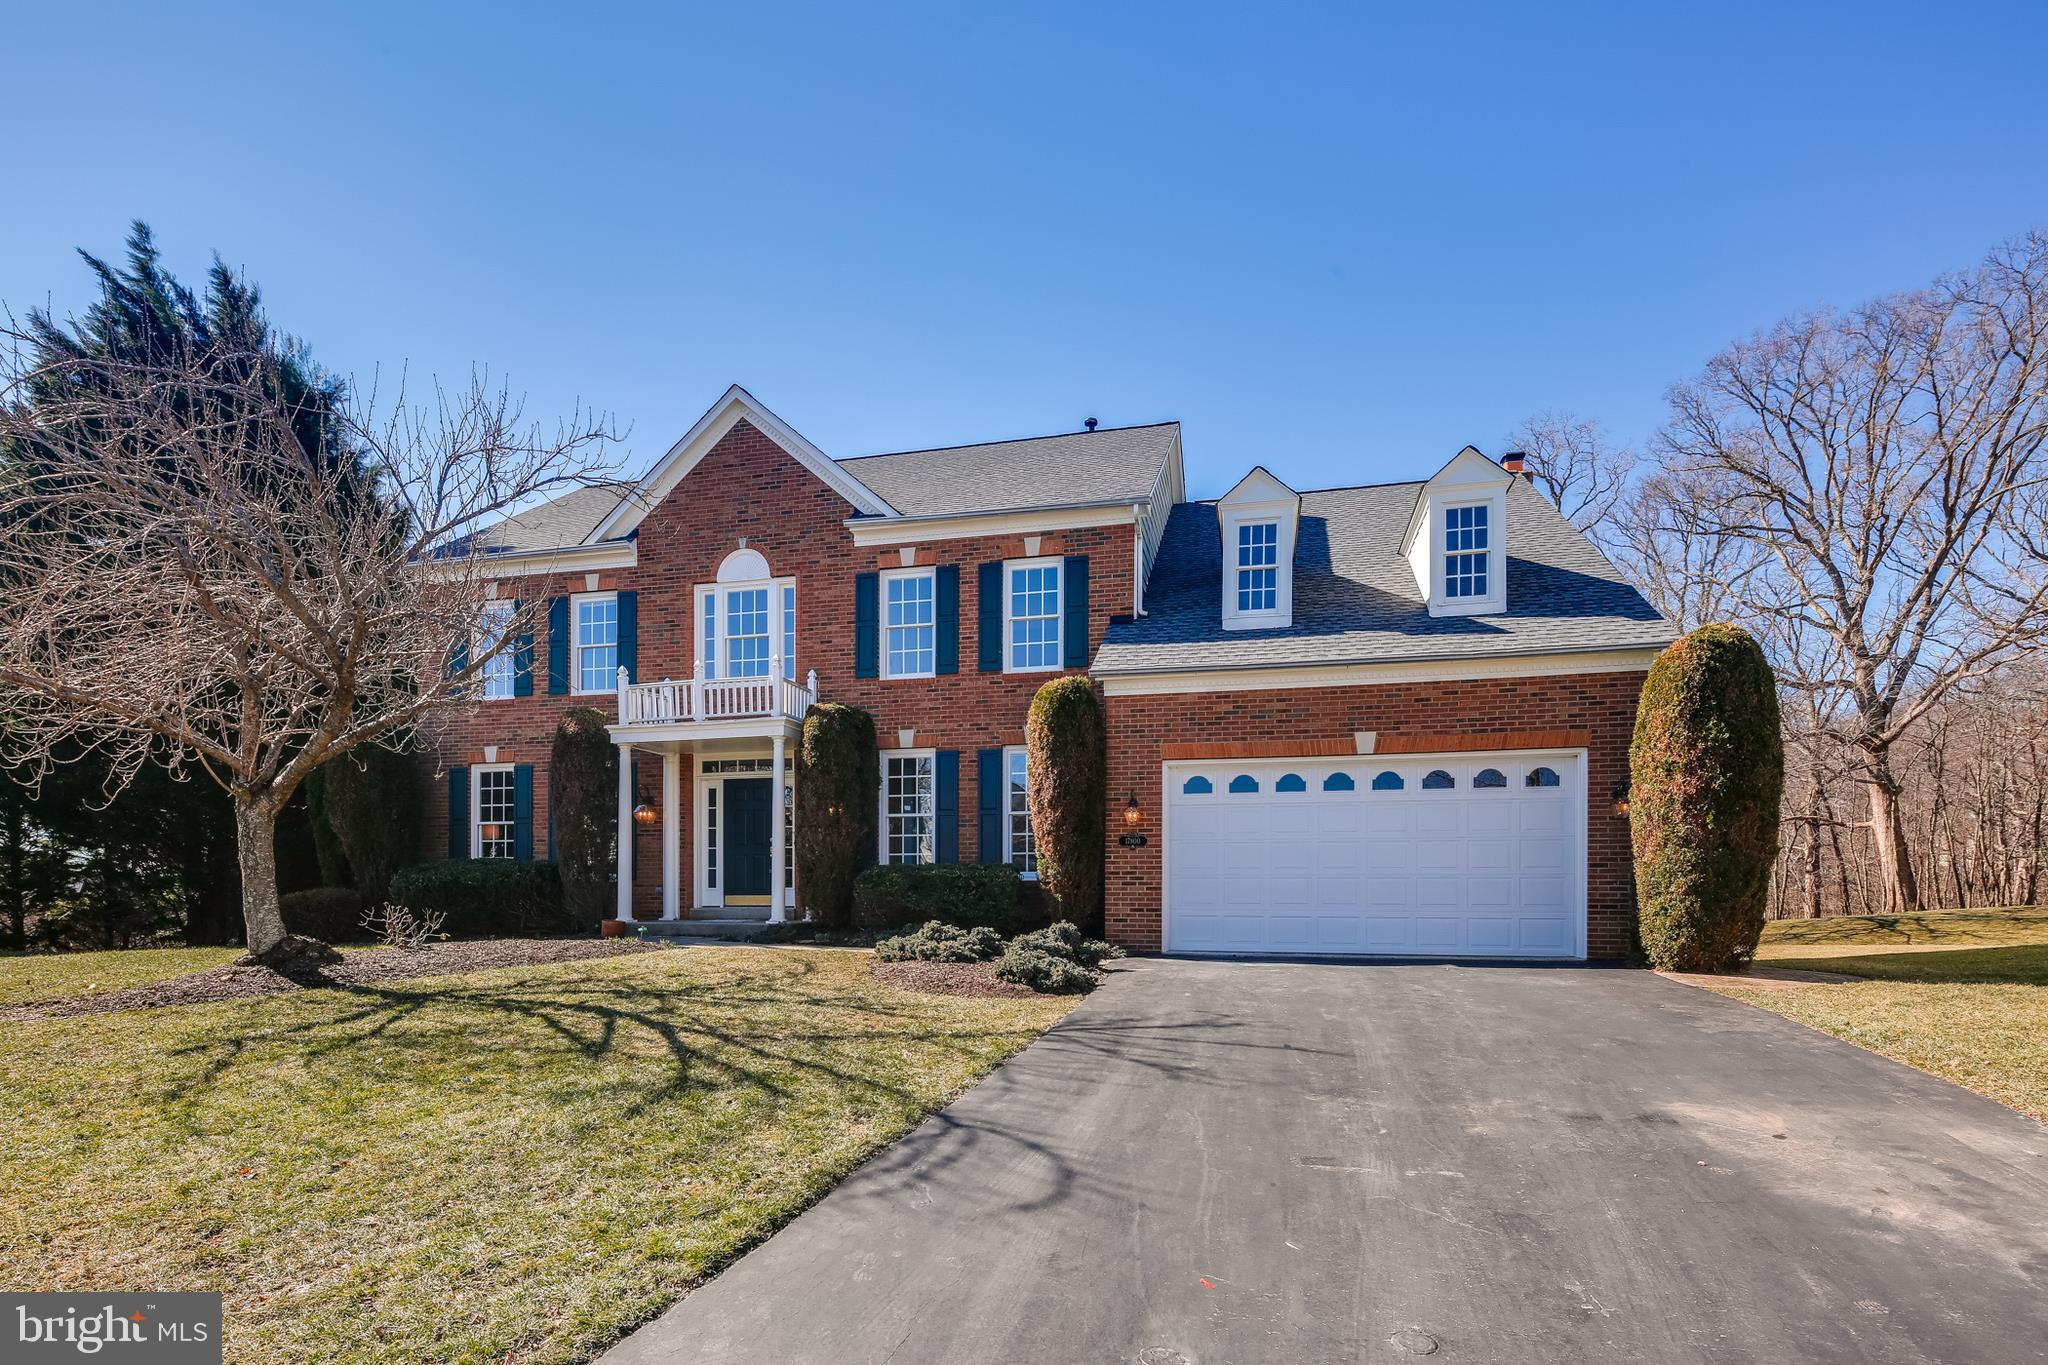 17800 MARBLE HILL PLACE, GERMANTOWN, MD 20874